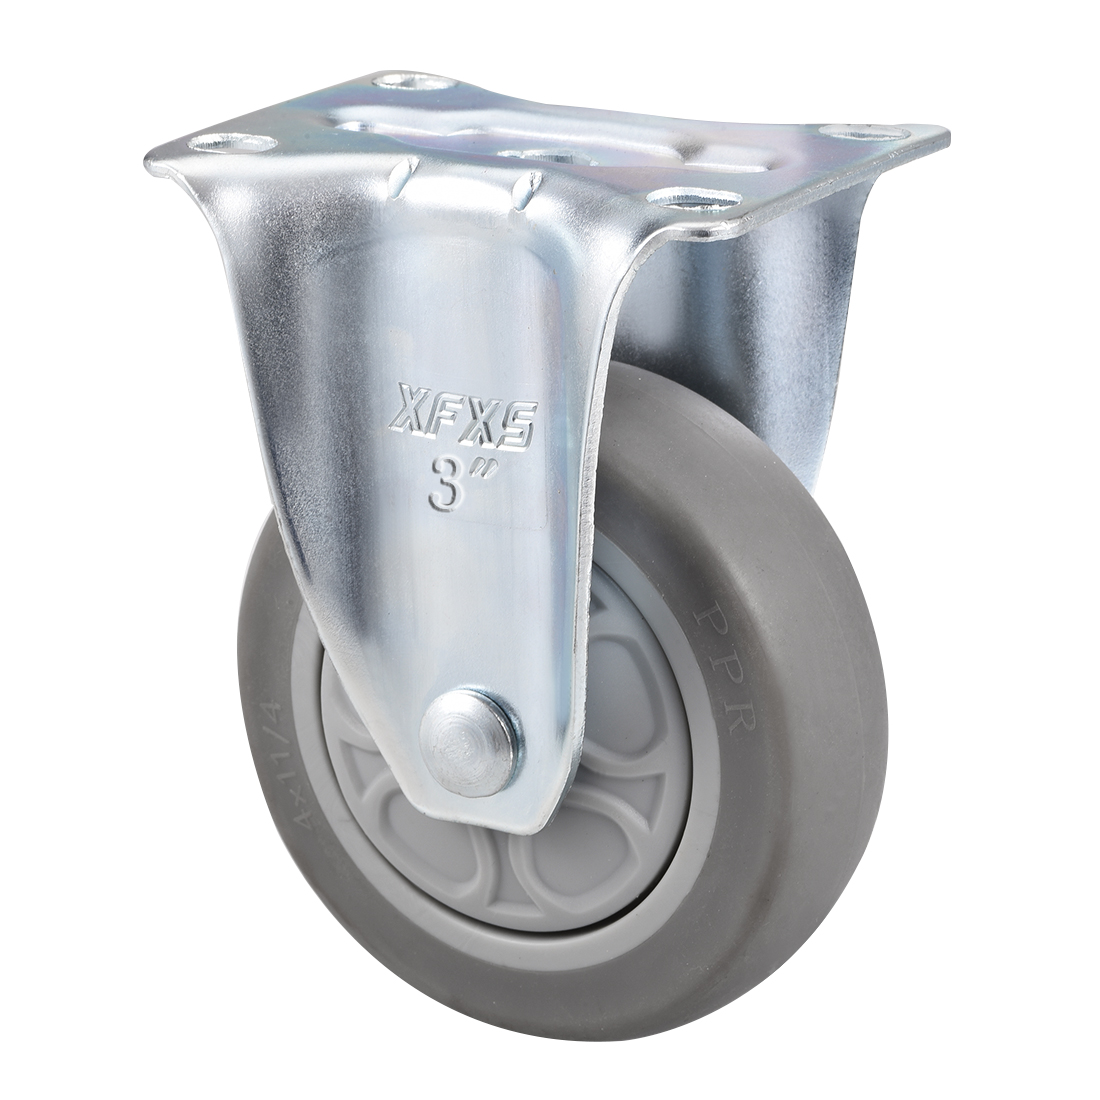 Fixed Caster Wheels 3inch TPR Caster Top Plate Mounted 264lb Capacity